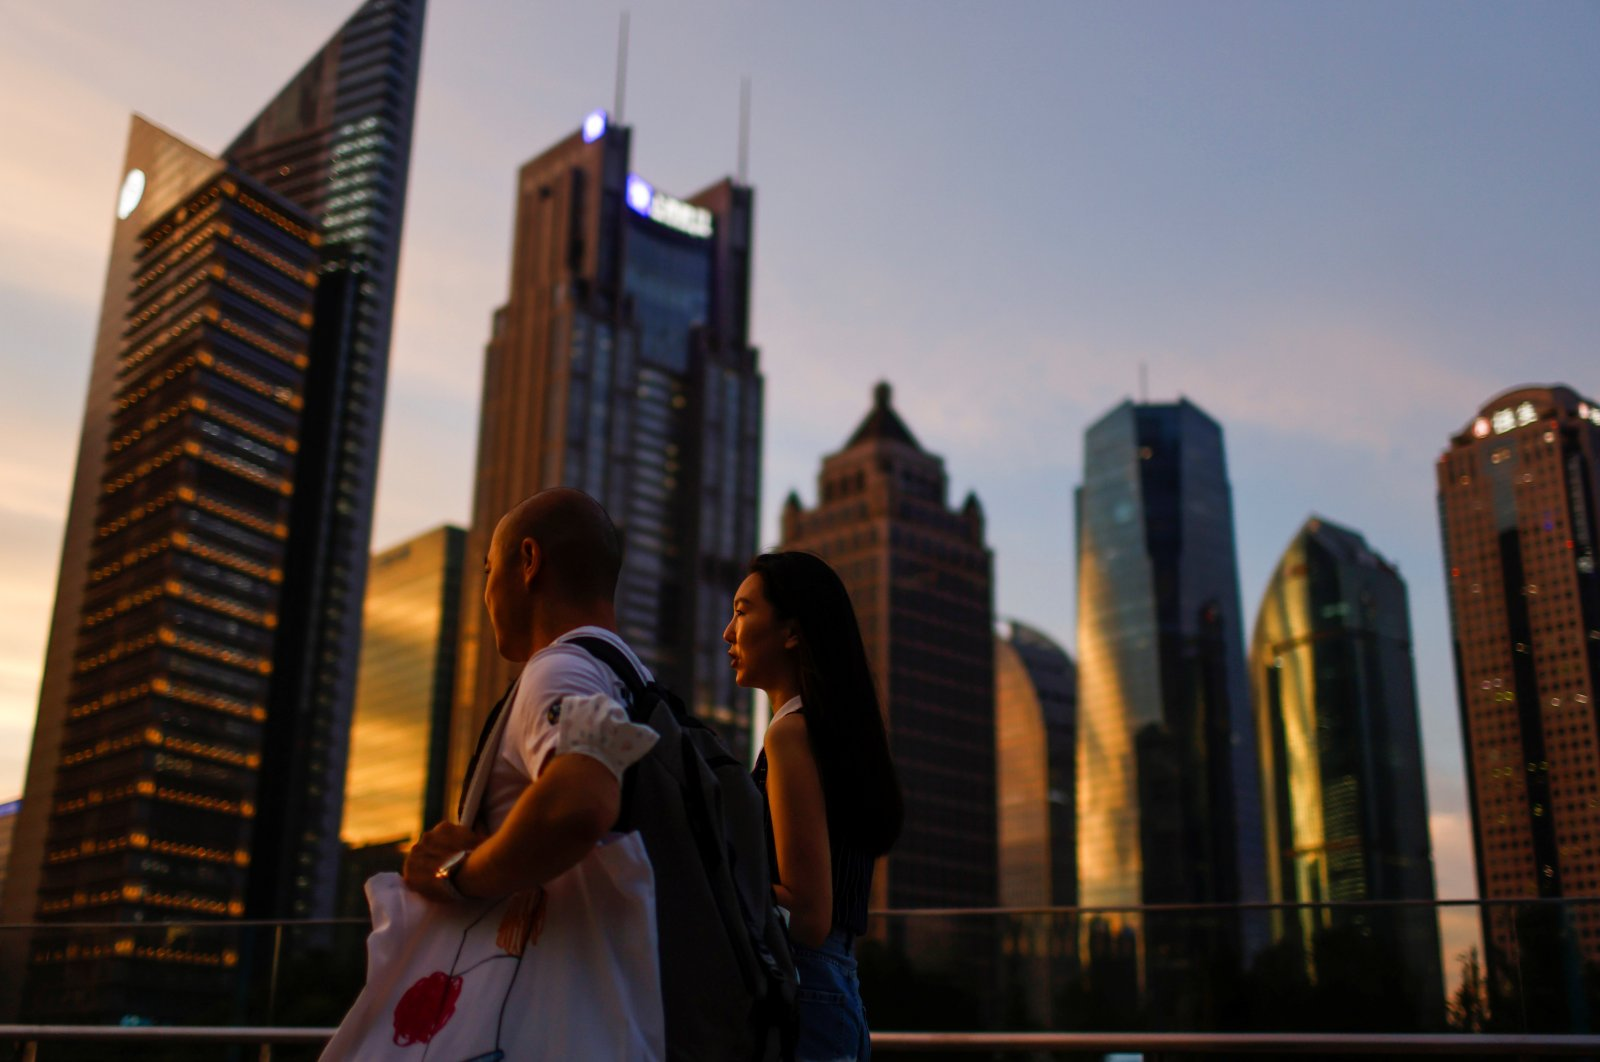 People walk in Lujiazui financial district during sunset in Pudong, Shanghai, China, July 13, 2021. (Reuters Photo)